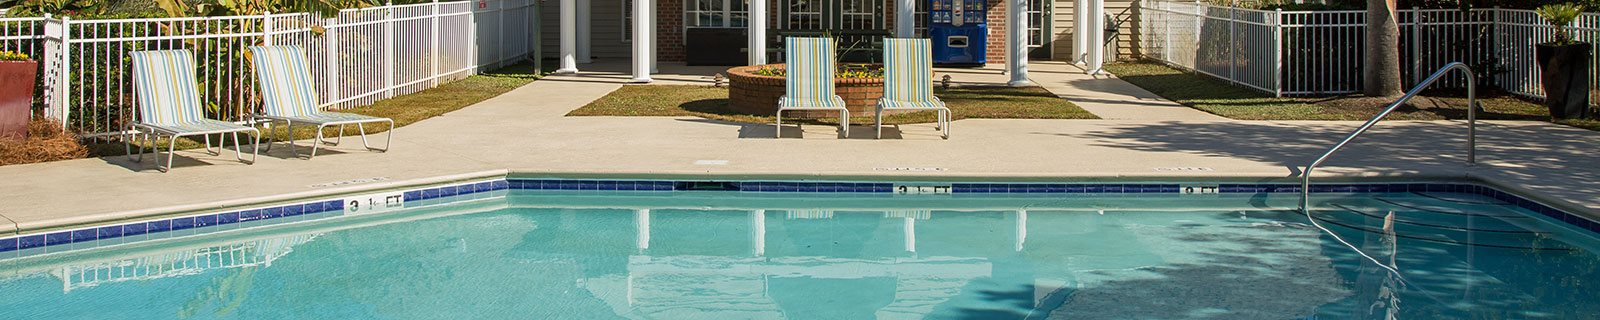 Swimming Pool With Relaxing Sundecks at Litchfield Oaks Apartments, Pawleys Island